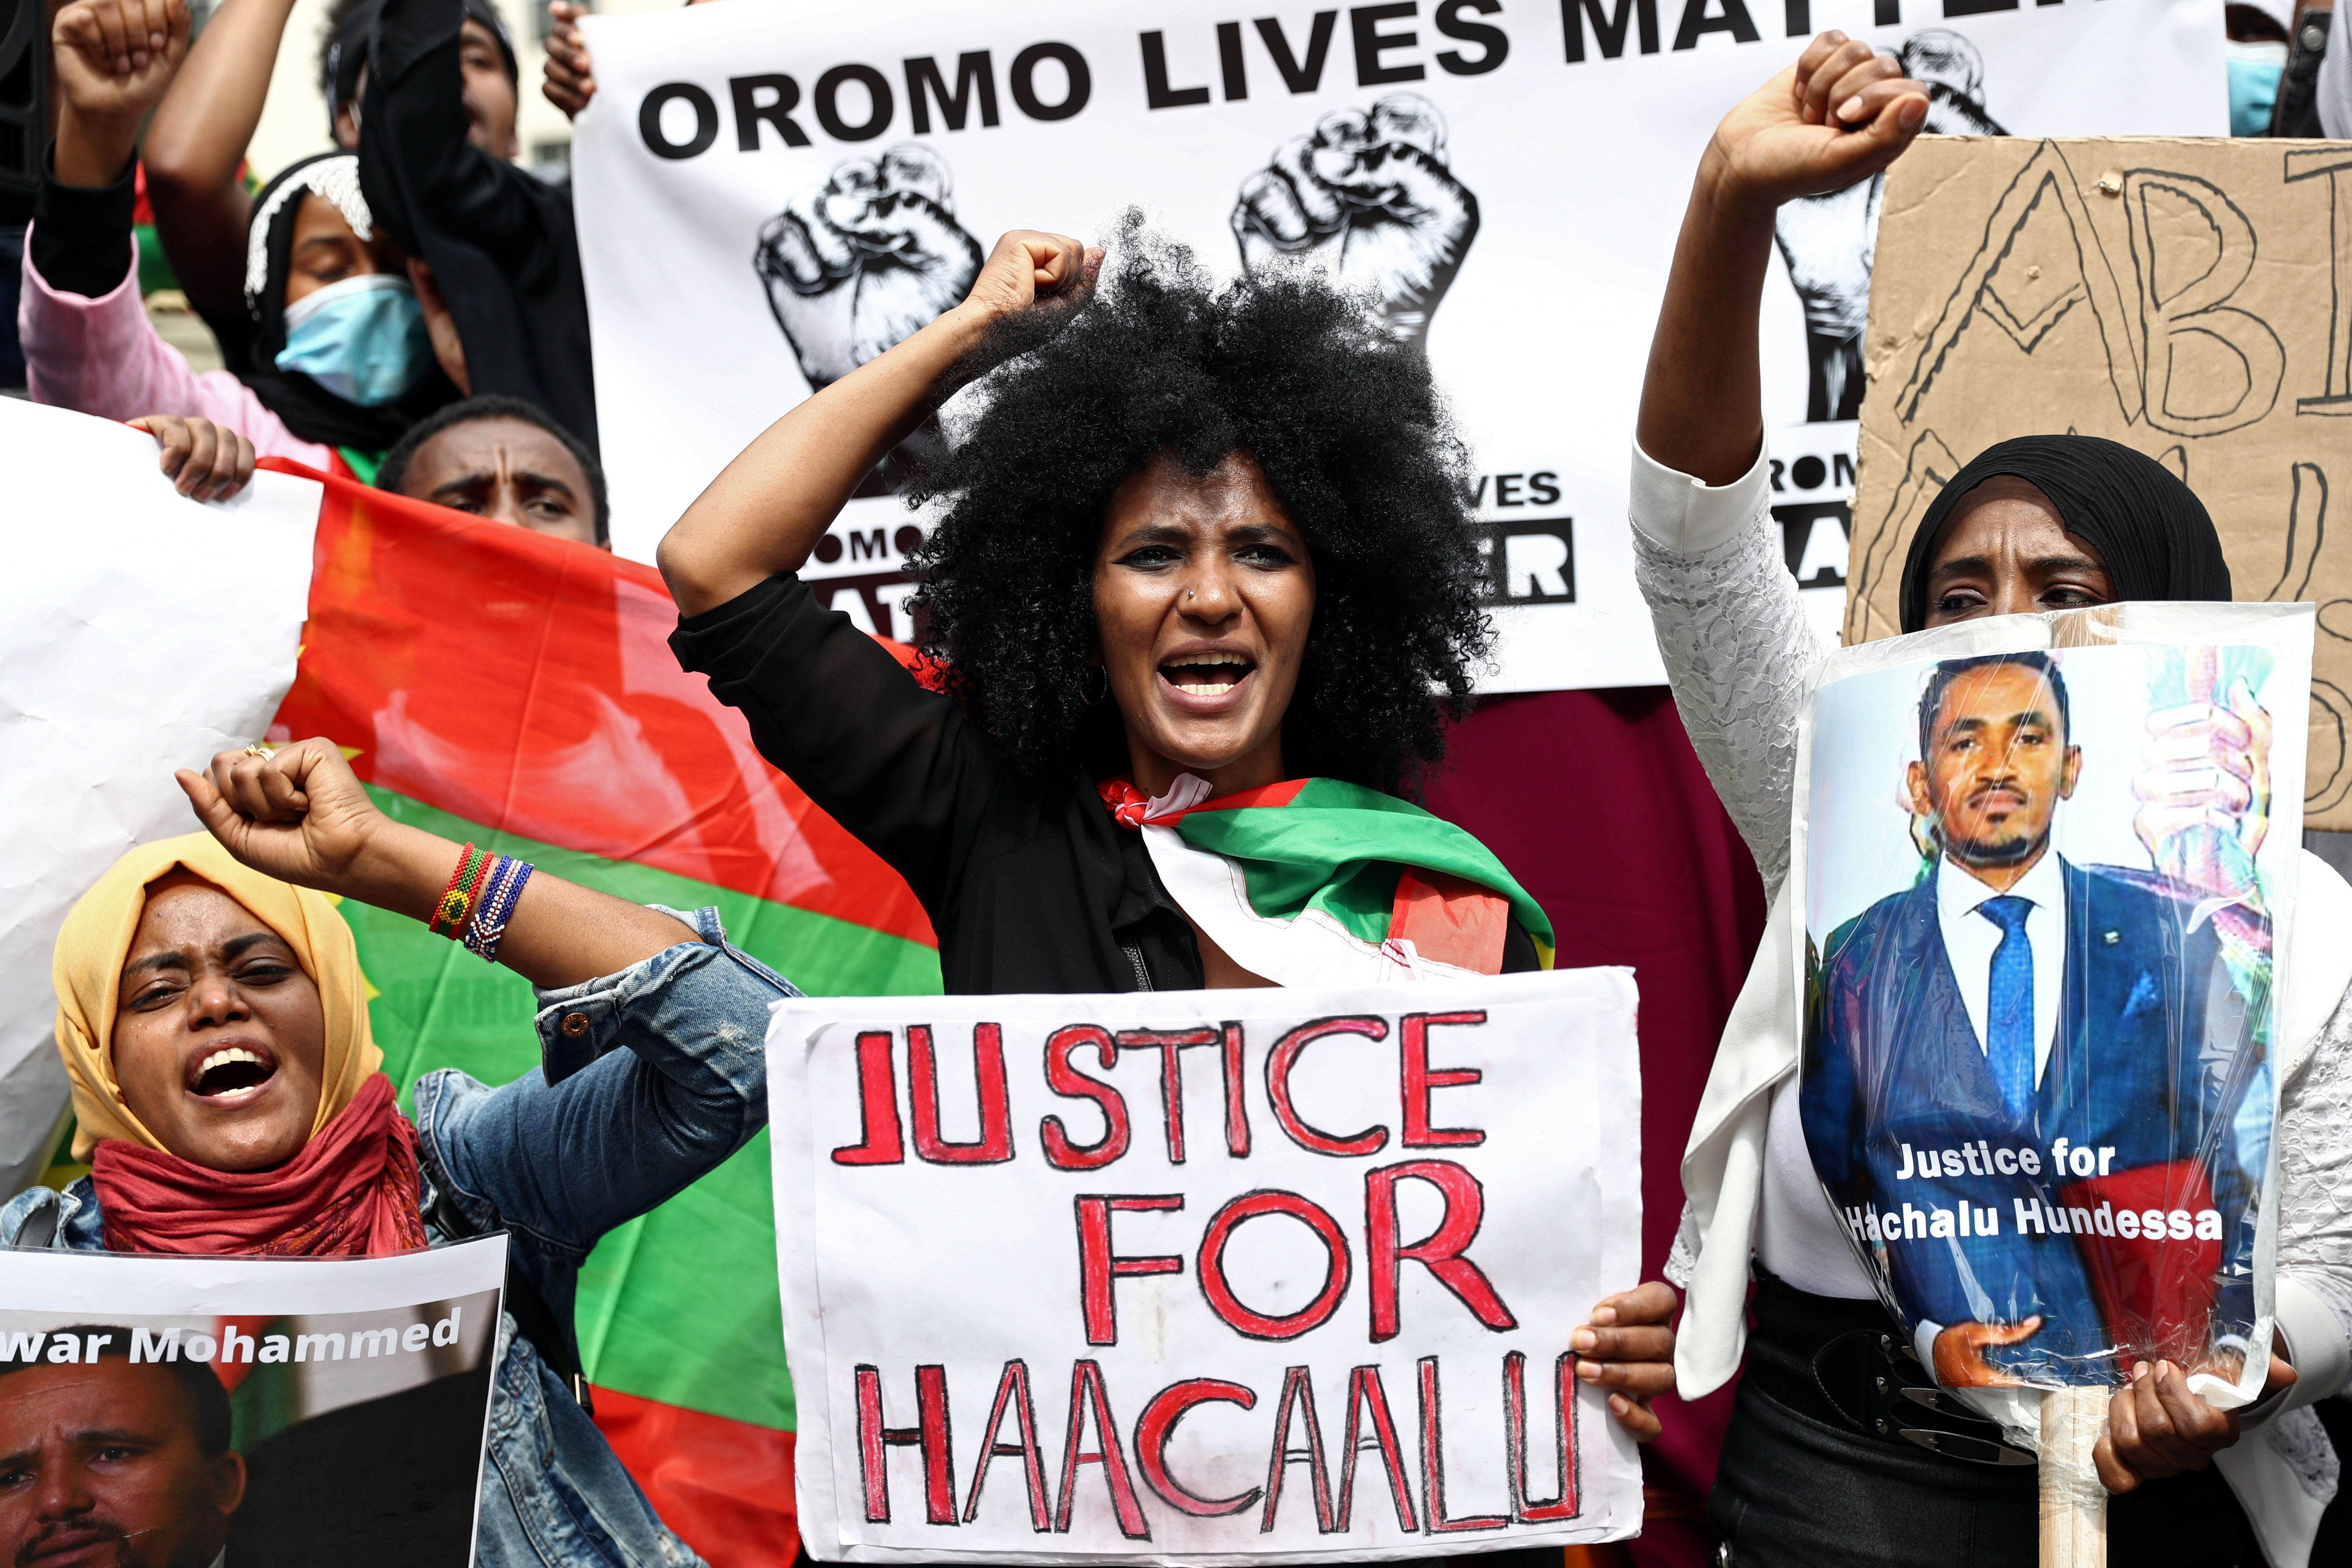 People gather to protest against the treatment of Ethiopia's ethnic Oromo group, July 3, 2020